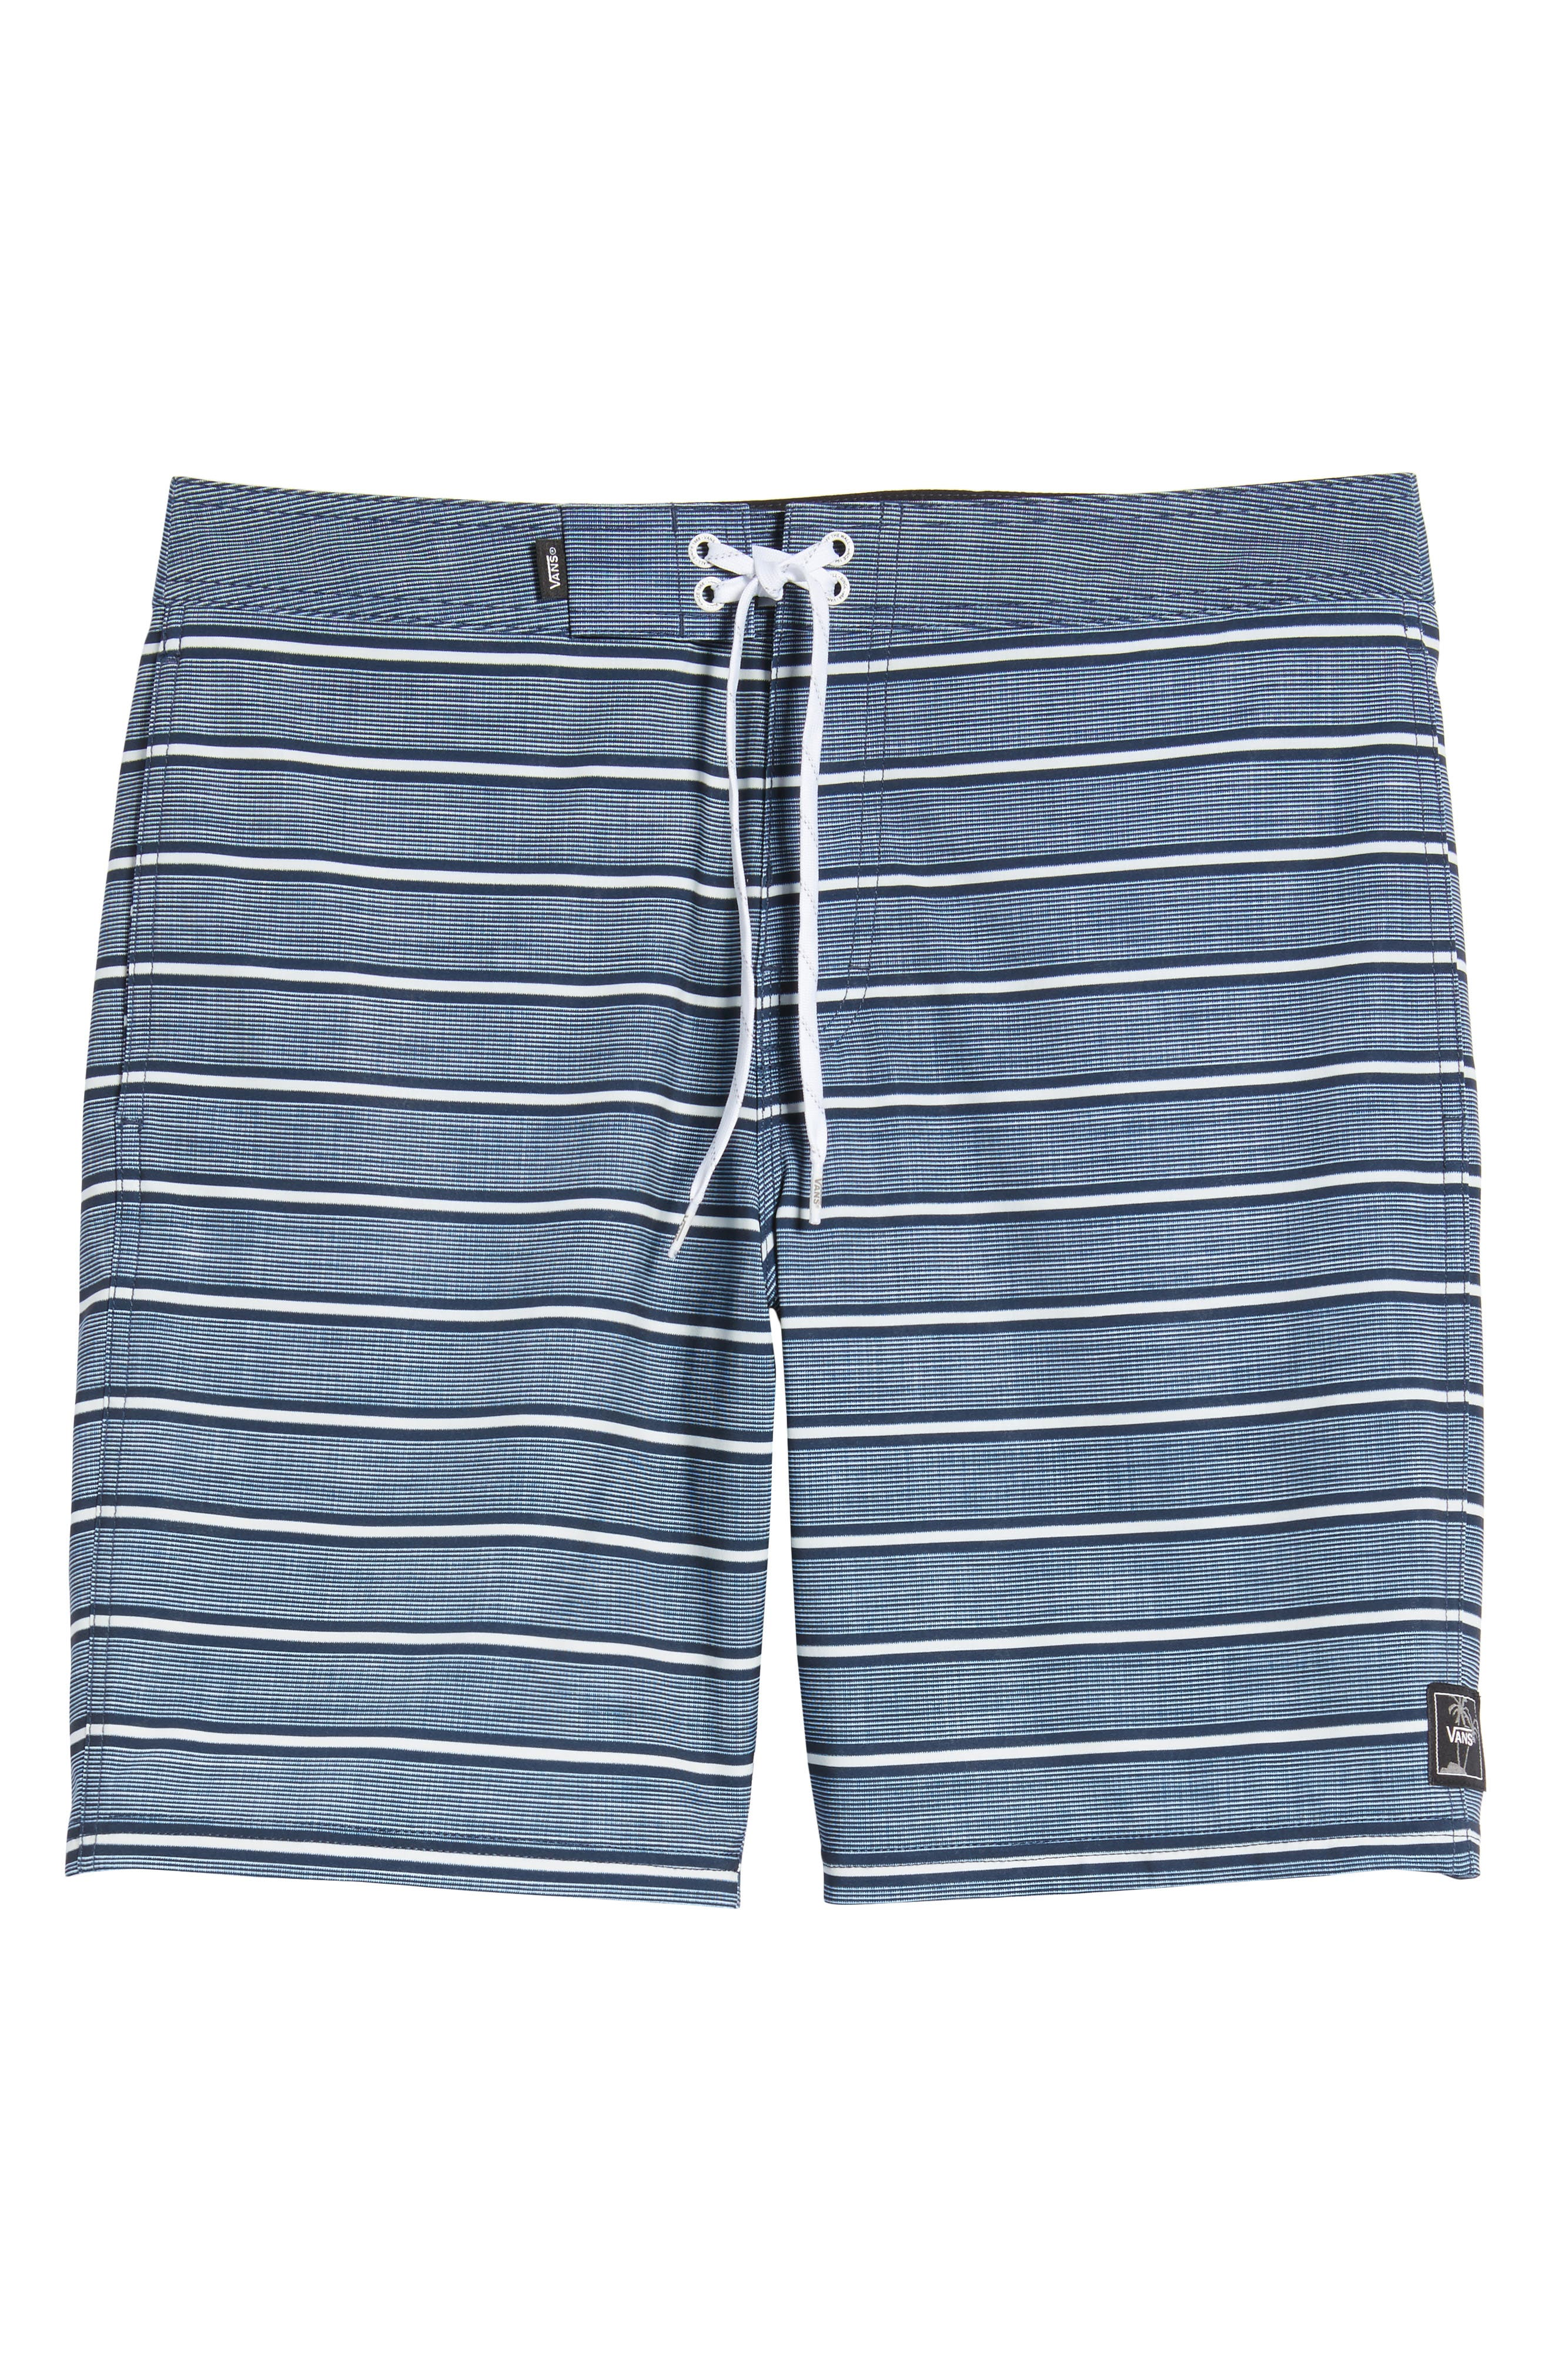 Rooftop Board Shorts,                             Alternate thumbnail 6, color,                             401